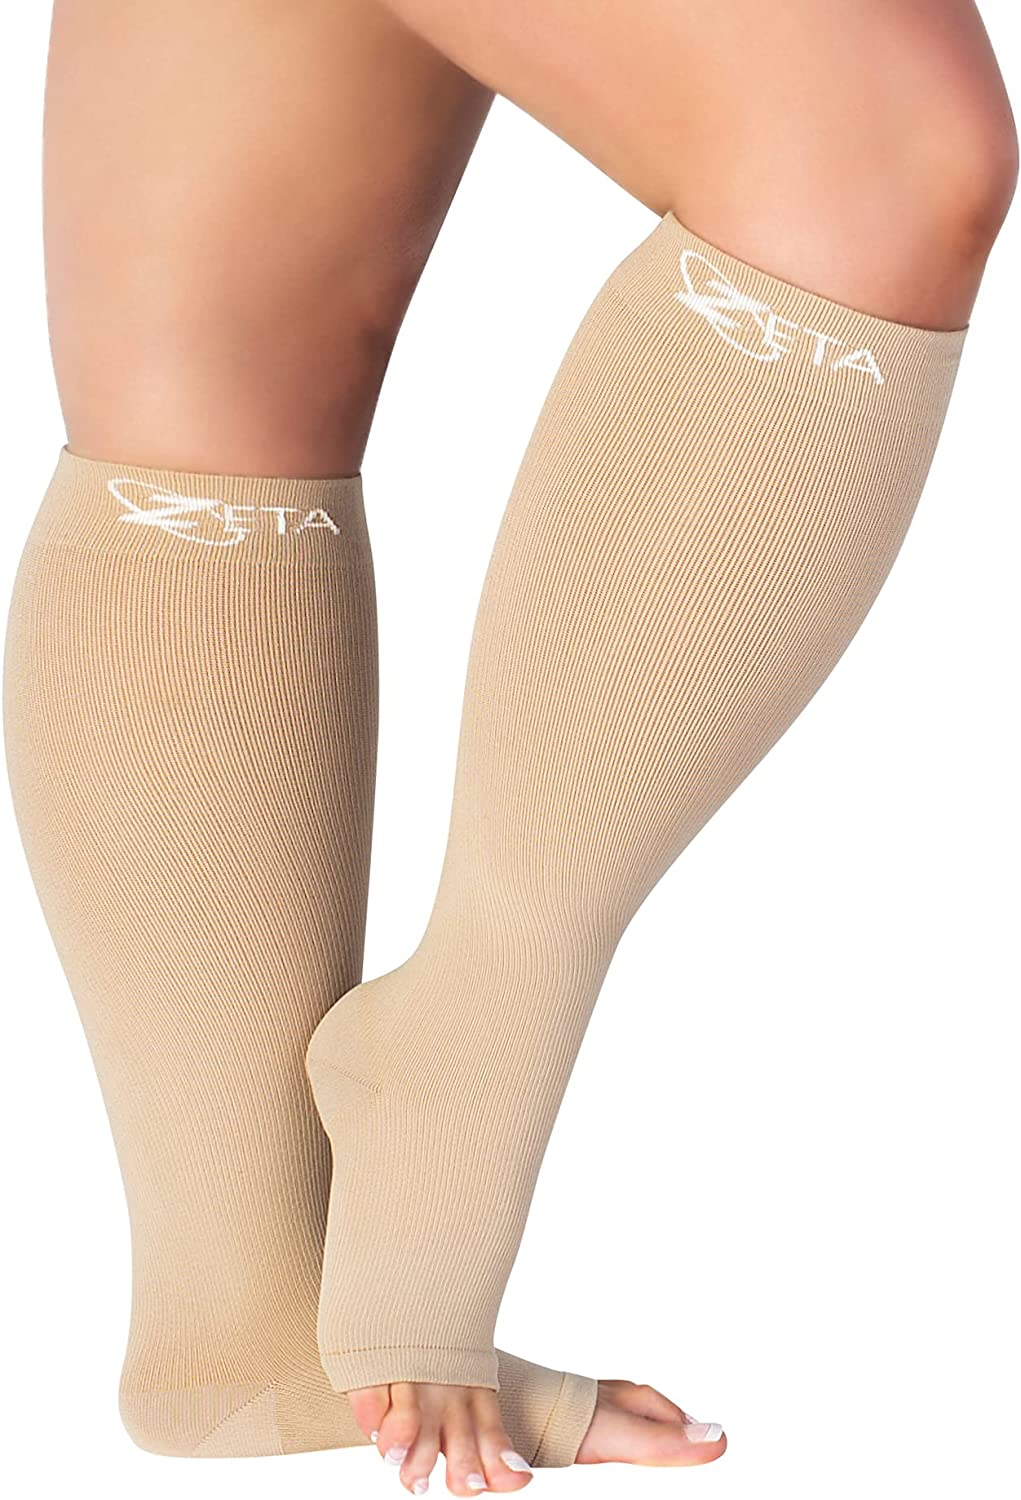 Super beauty product restock quality top! Zeta Cheap mail order specialty store Socks Open Toe XXXL 26 Wide Plus Compression Calf Size Inch